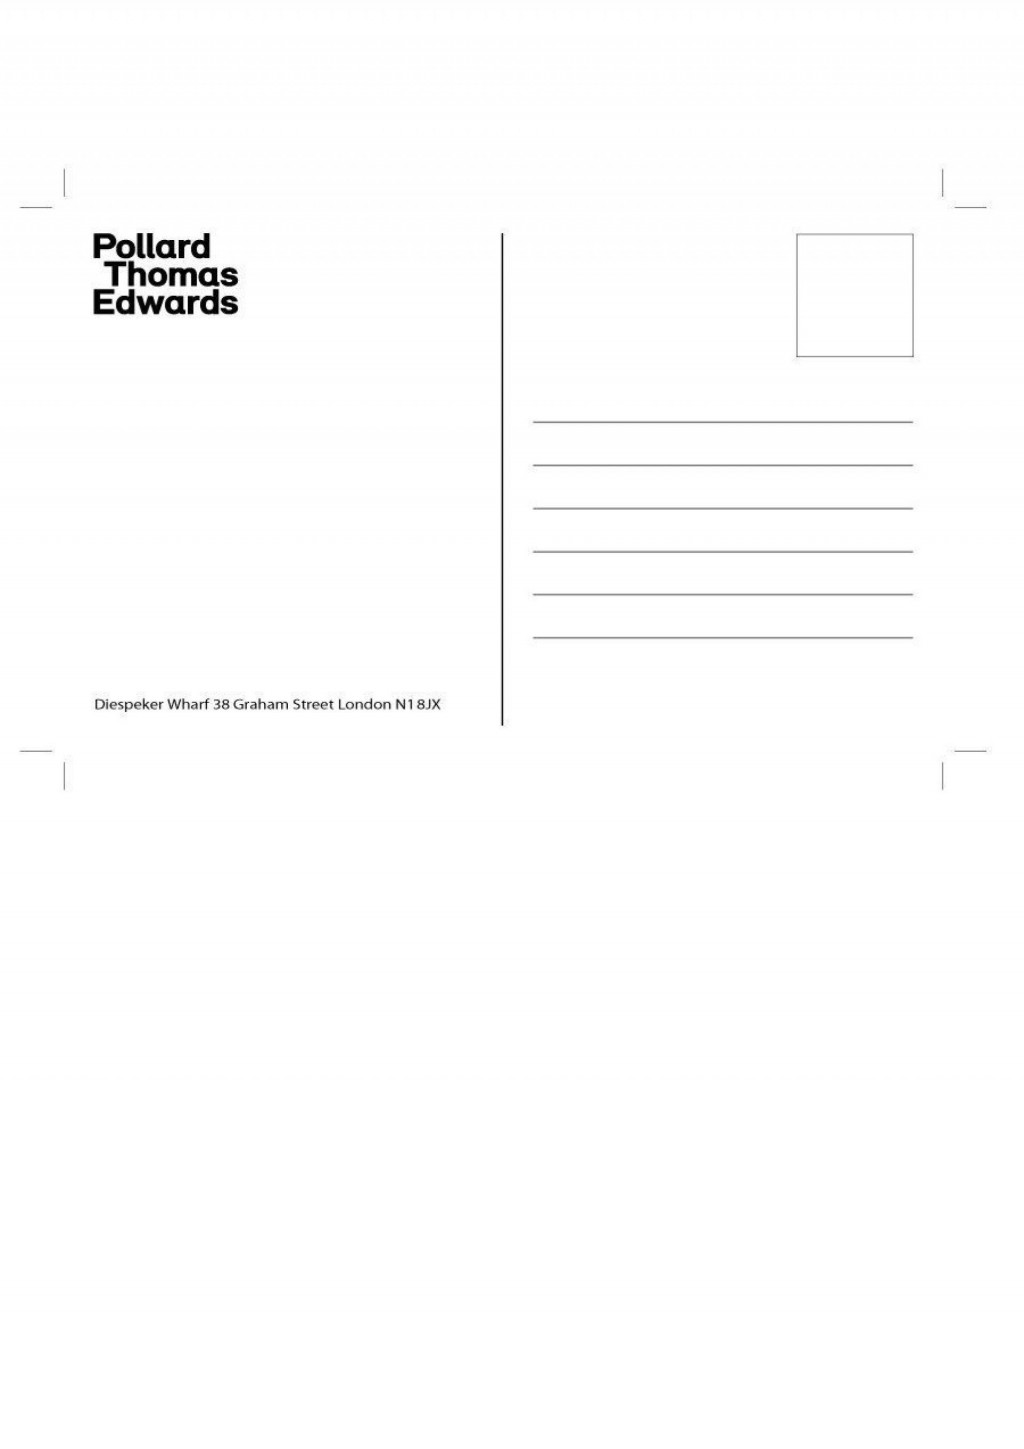 003 Awful Rsvp Postcard Template For Word Sample Large